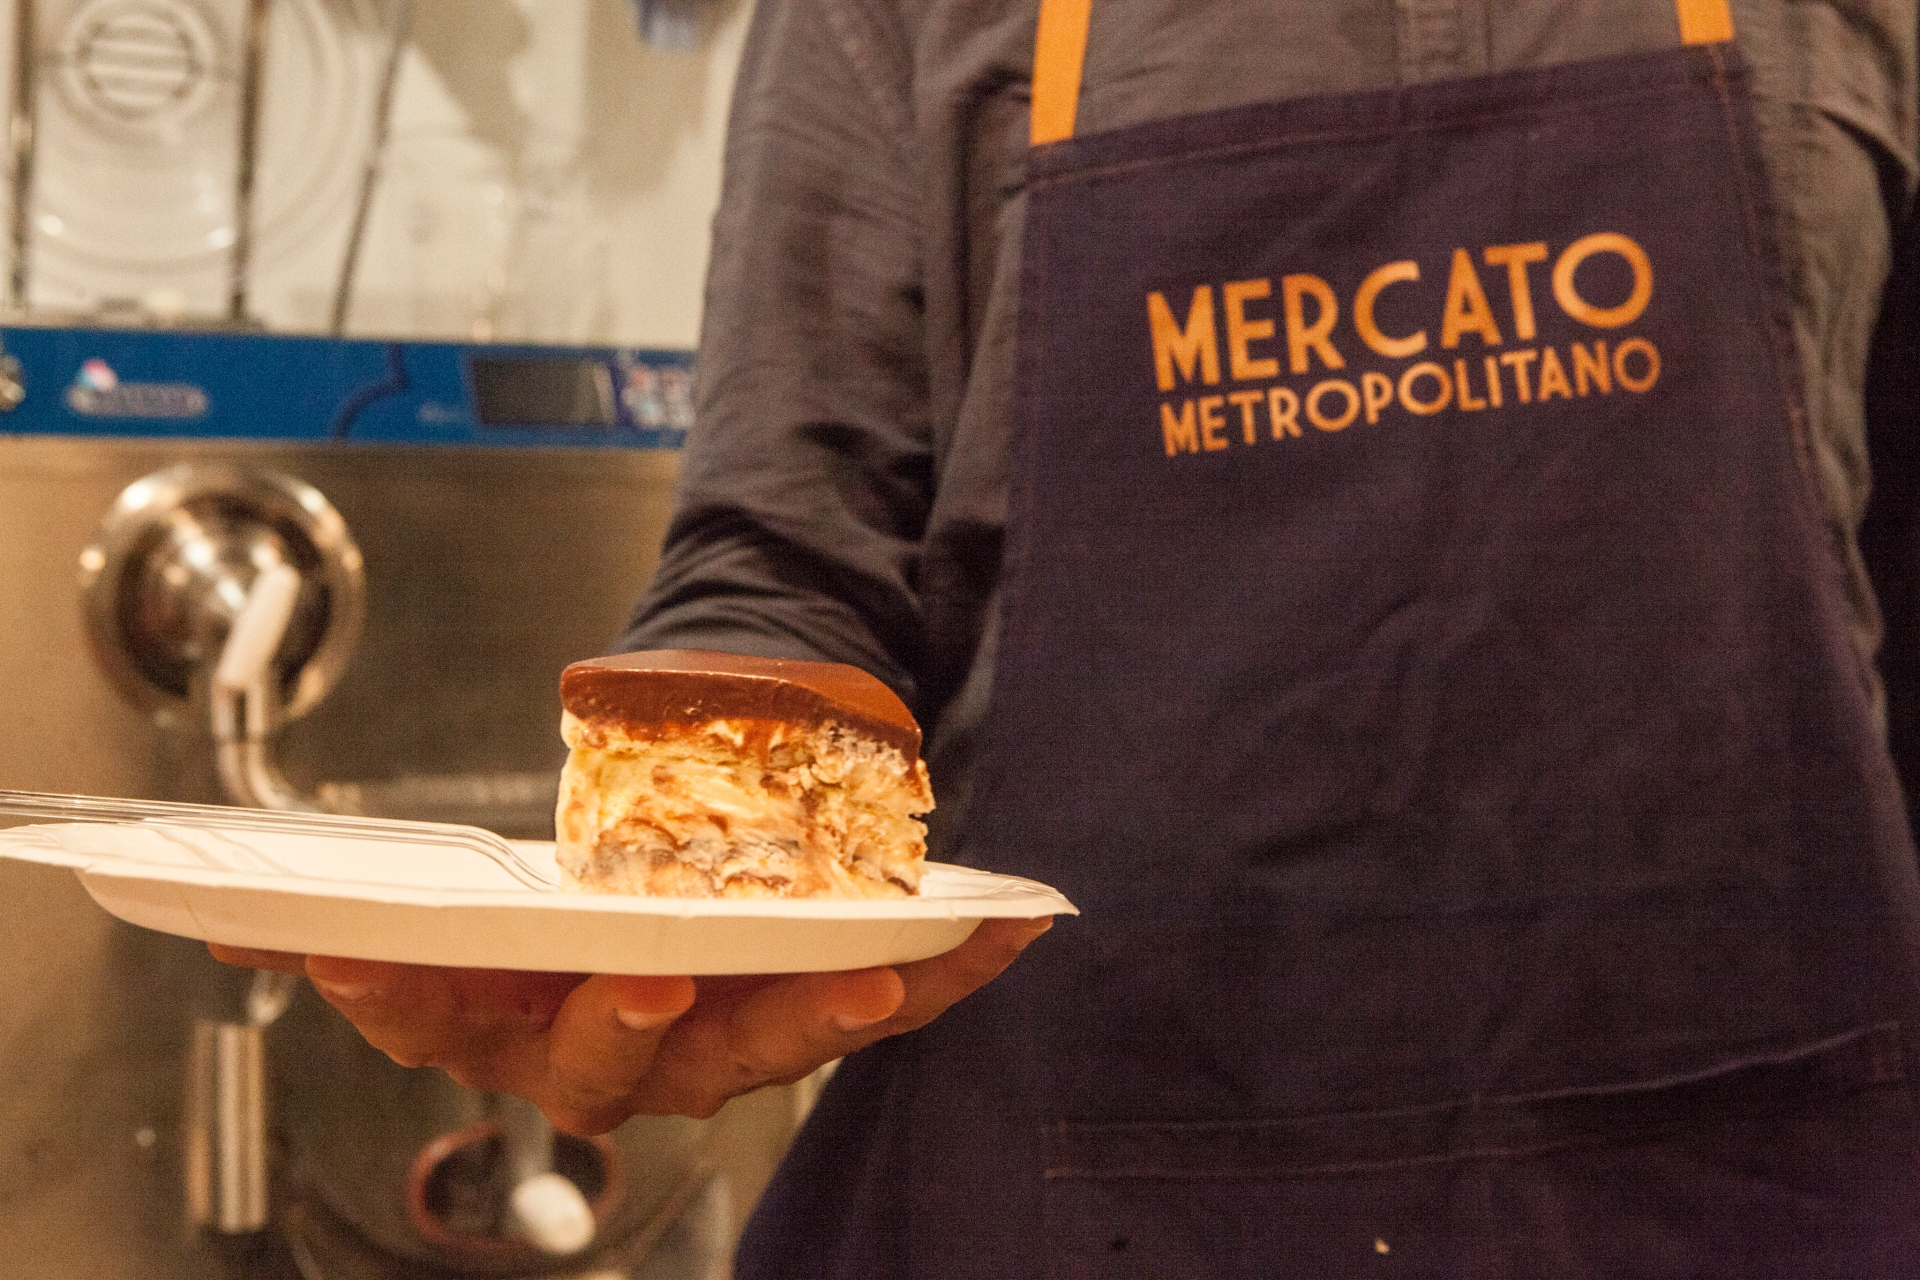 Street food feast at the Mercato